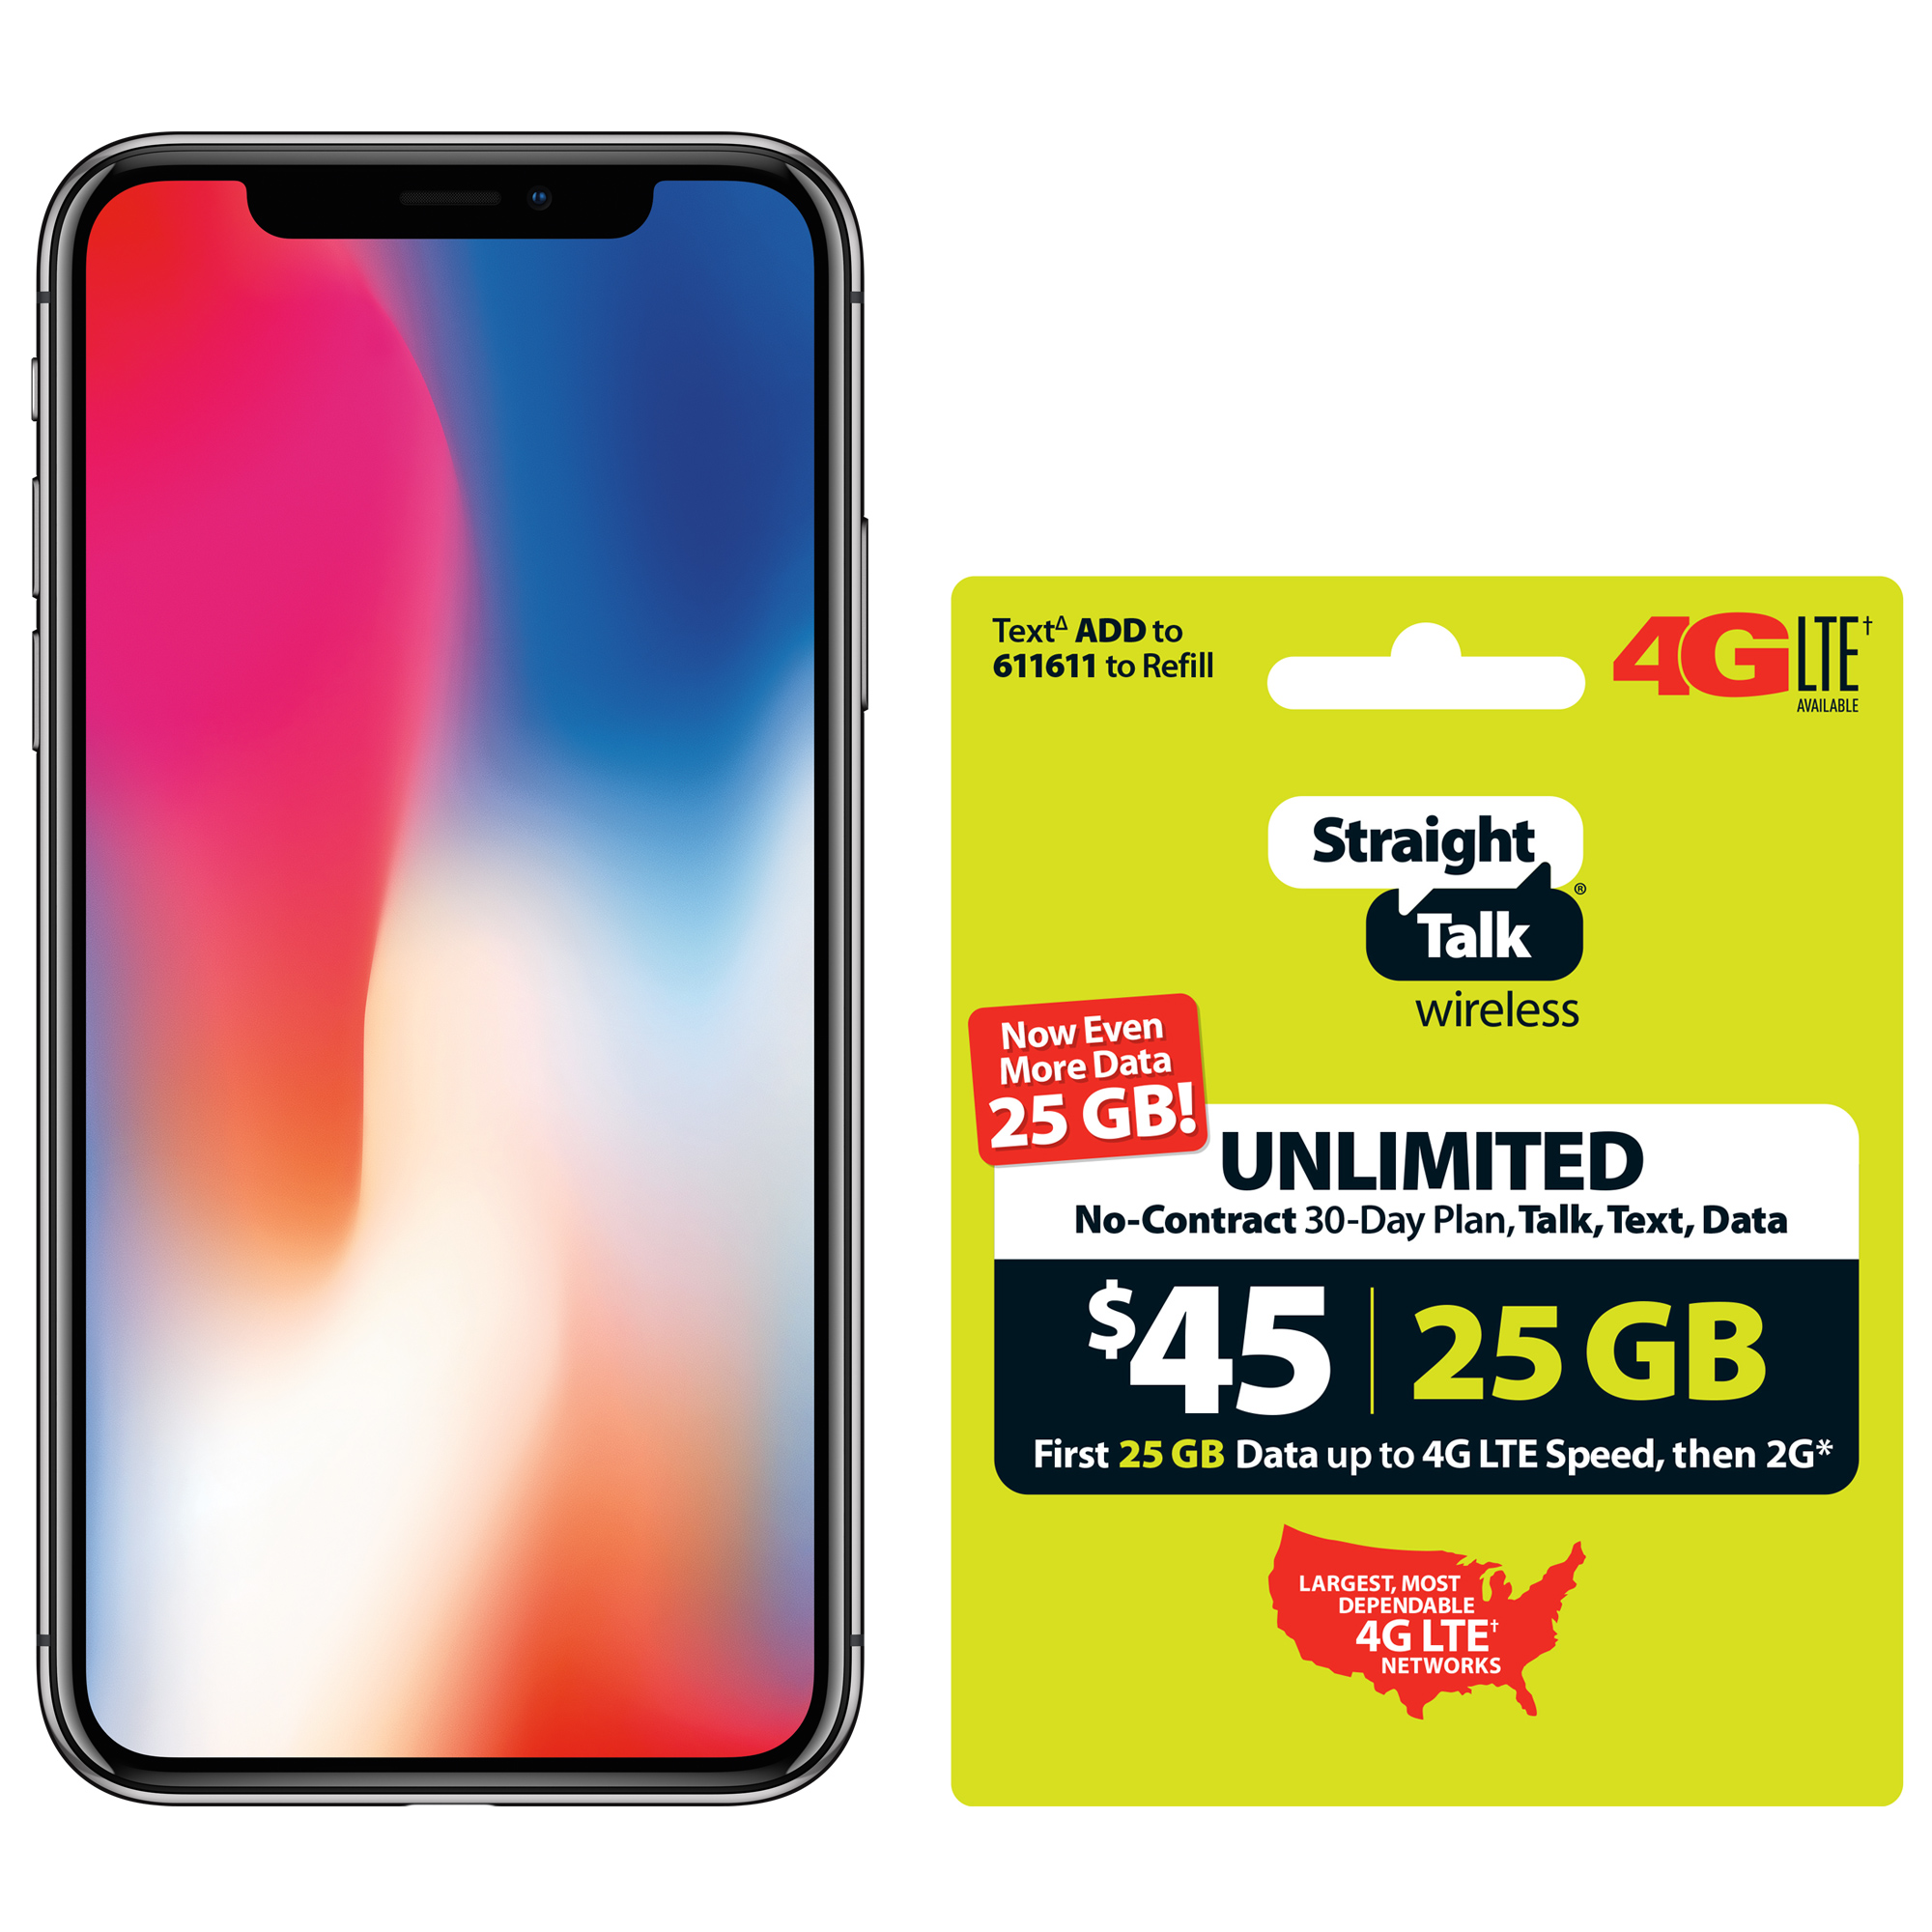 Straight Talk Apple iPhone X Bundle with $45 airtime plan, Gray